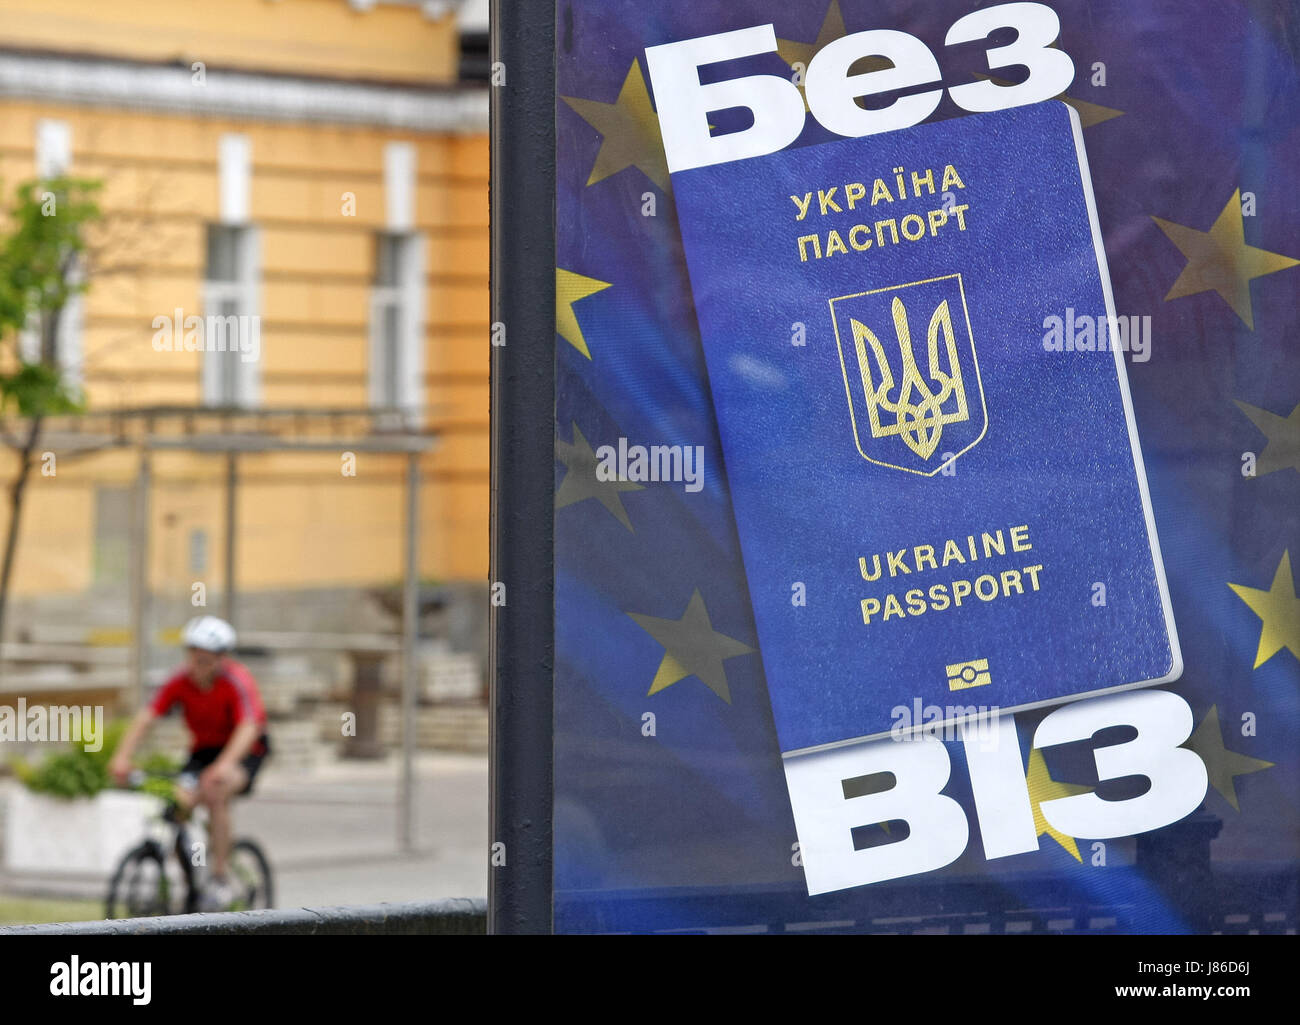 May 27, 2017 - Kiev, Ukraine - A cyclist rides near a banner with image of Ukrainian passport on the background Stock Photo